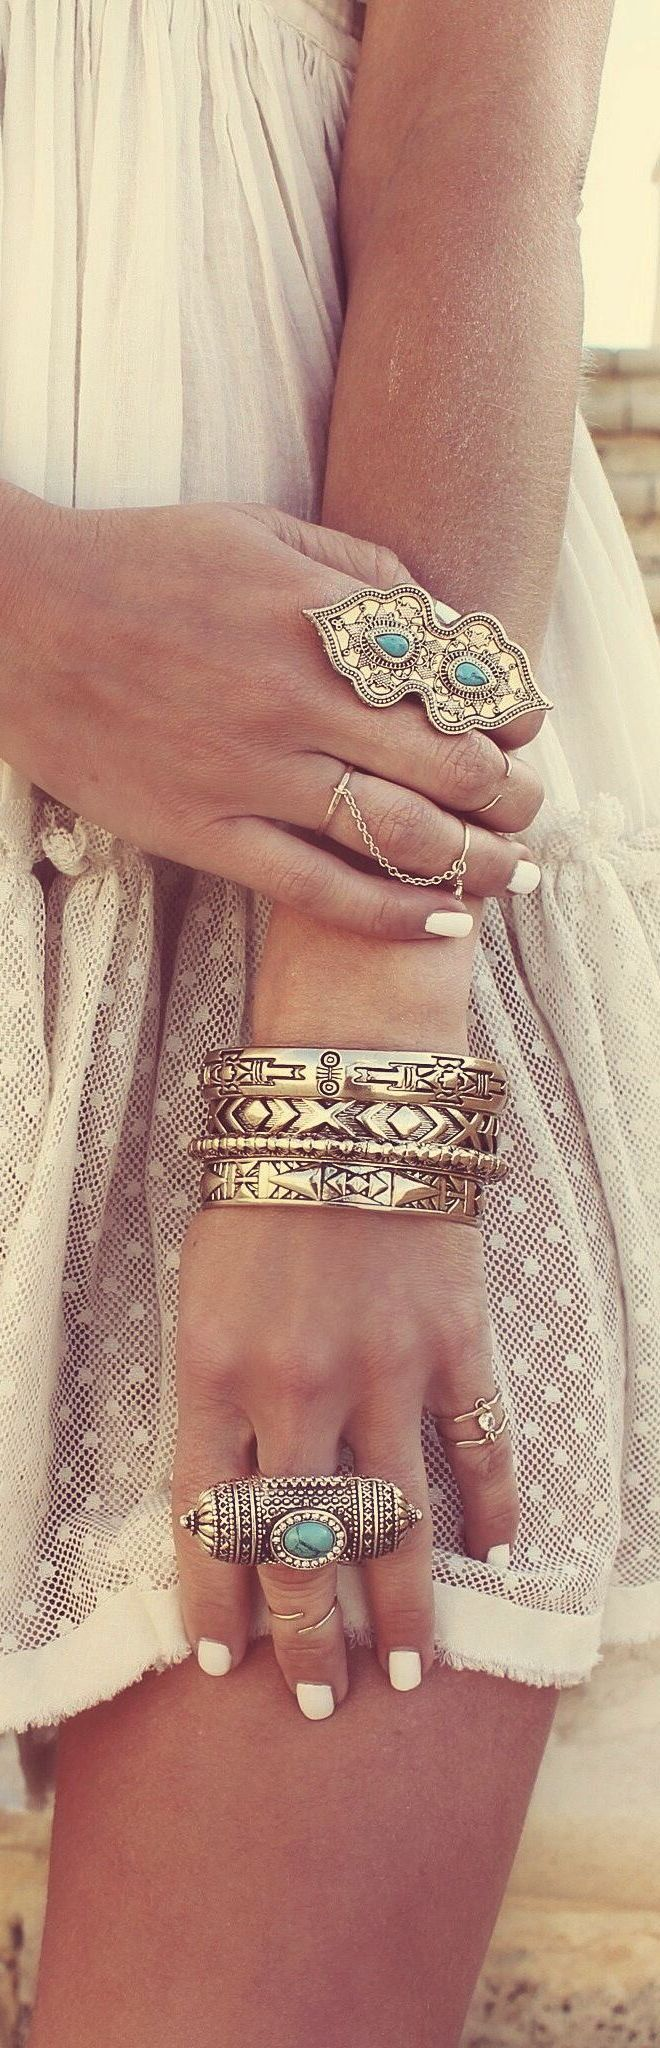 Fashion Trends: Boho Jewelry 2020